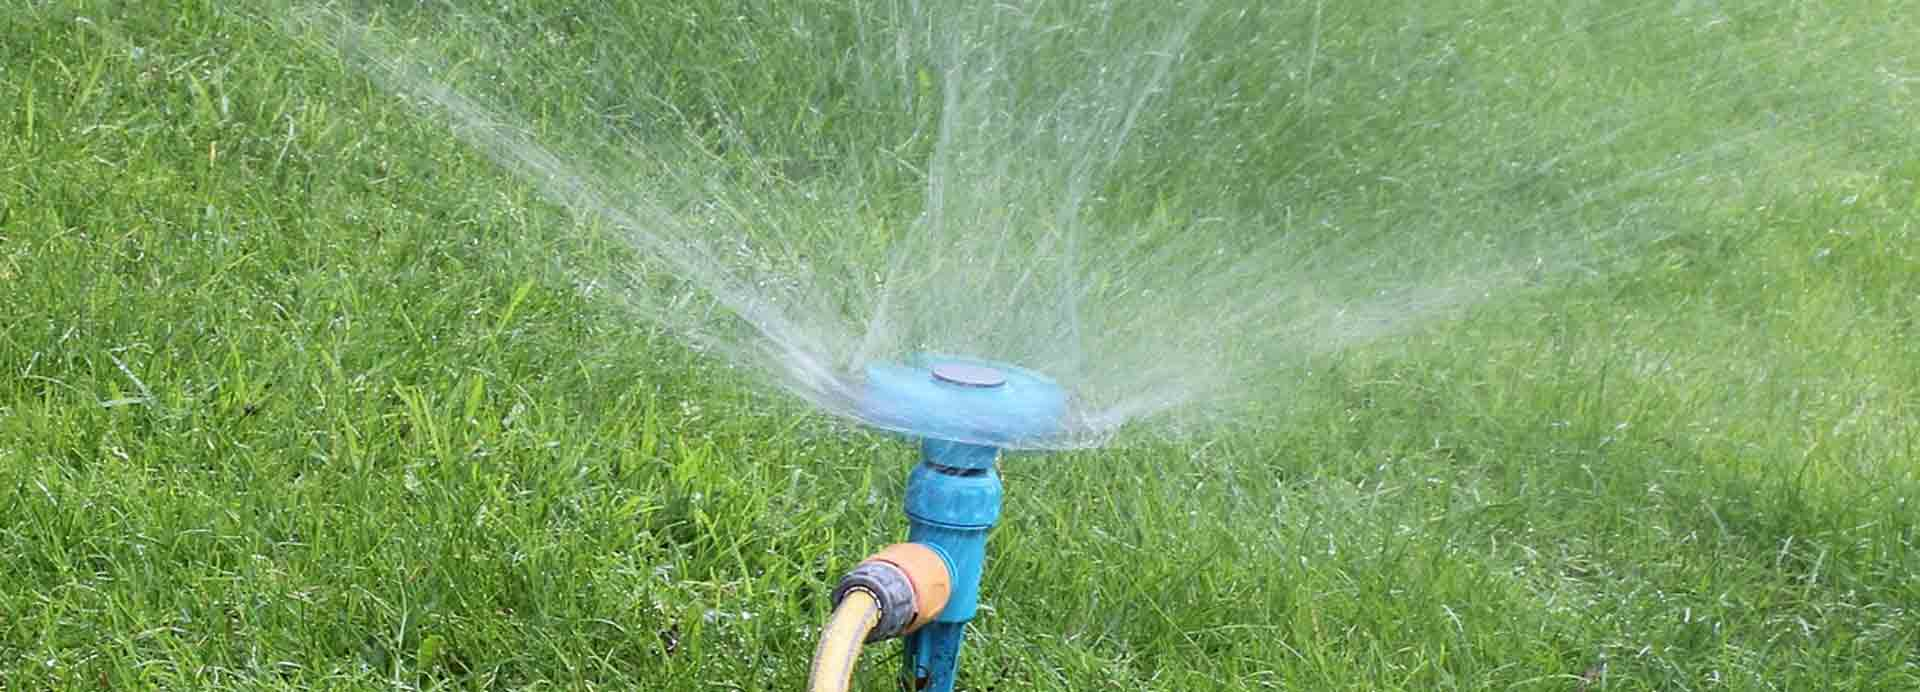 Rotating water sprinkler